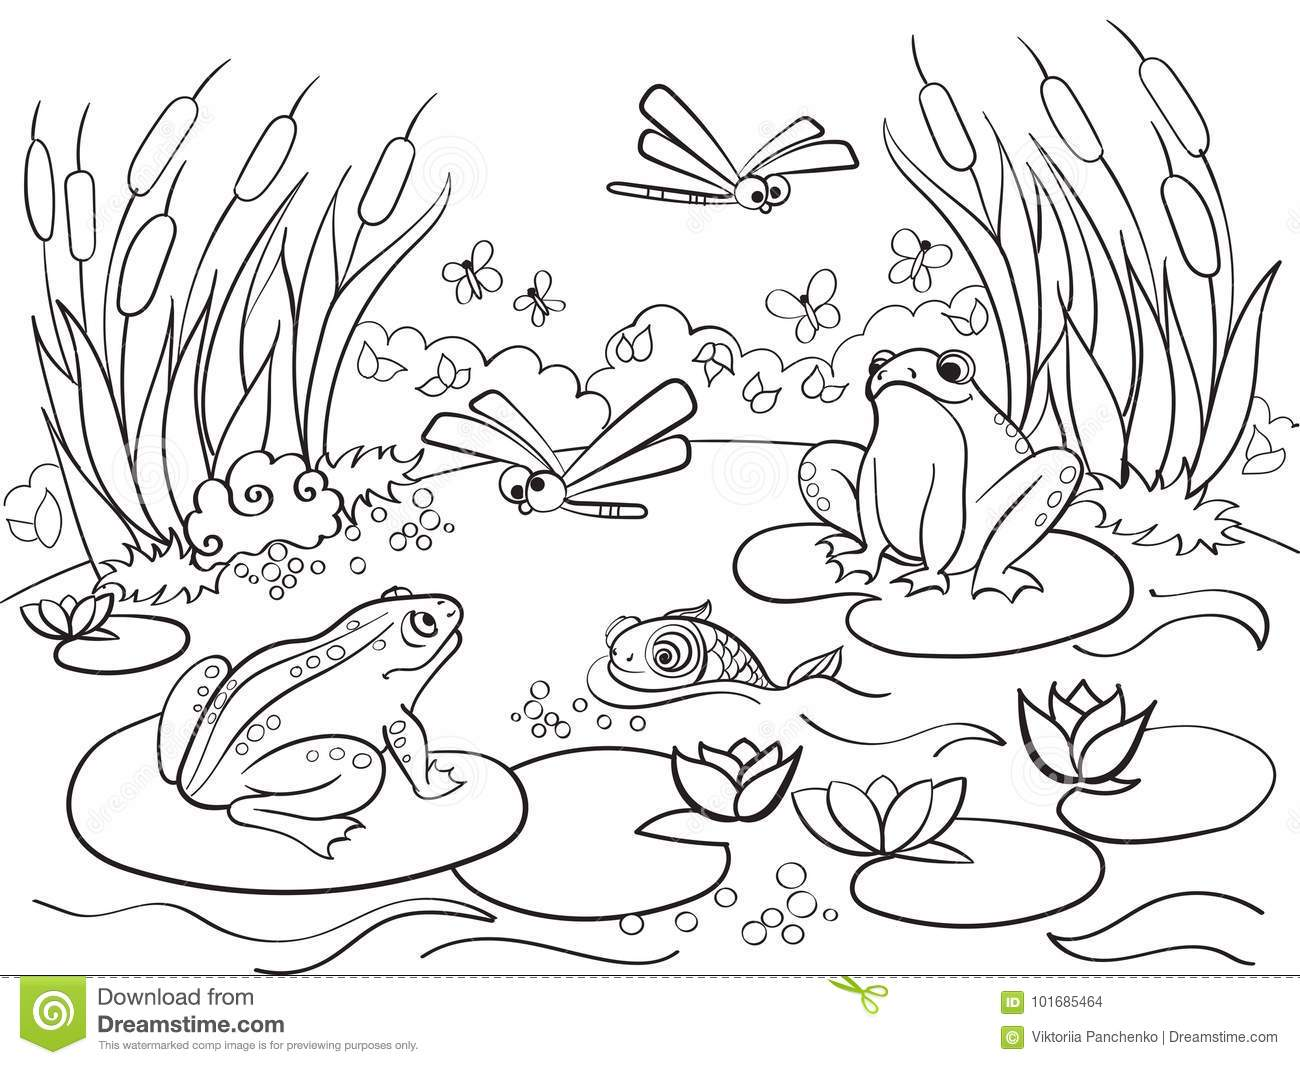 Wetland Landscape With Animals Coloring Raster For Adults